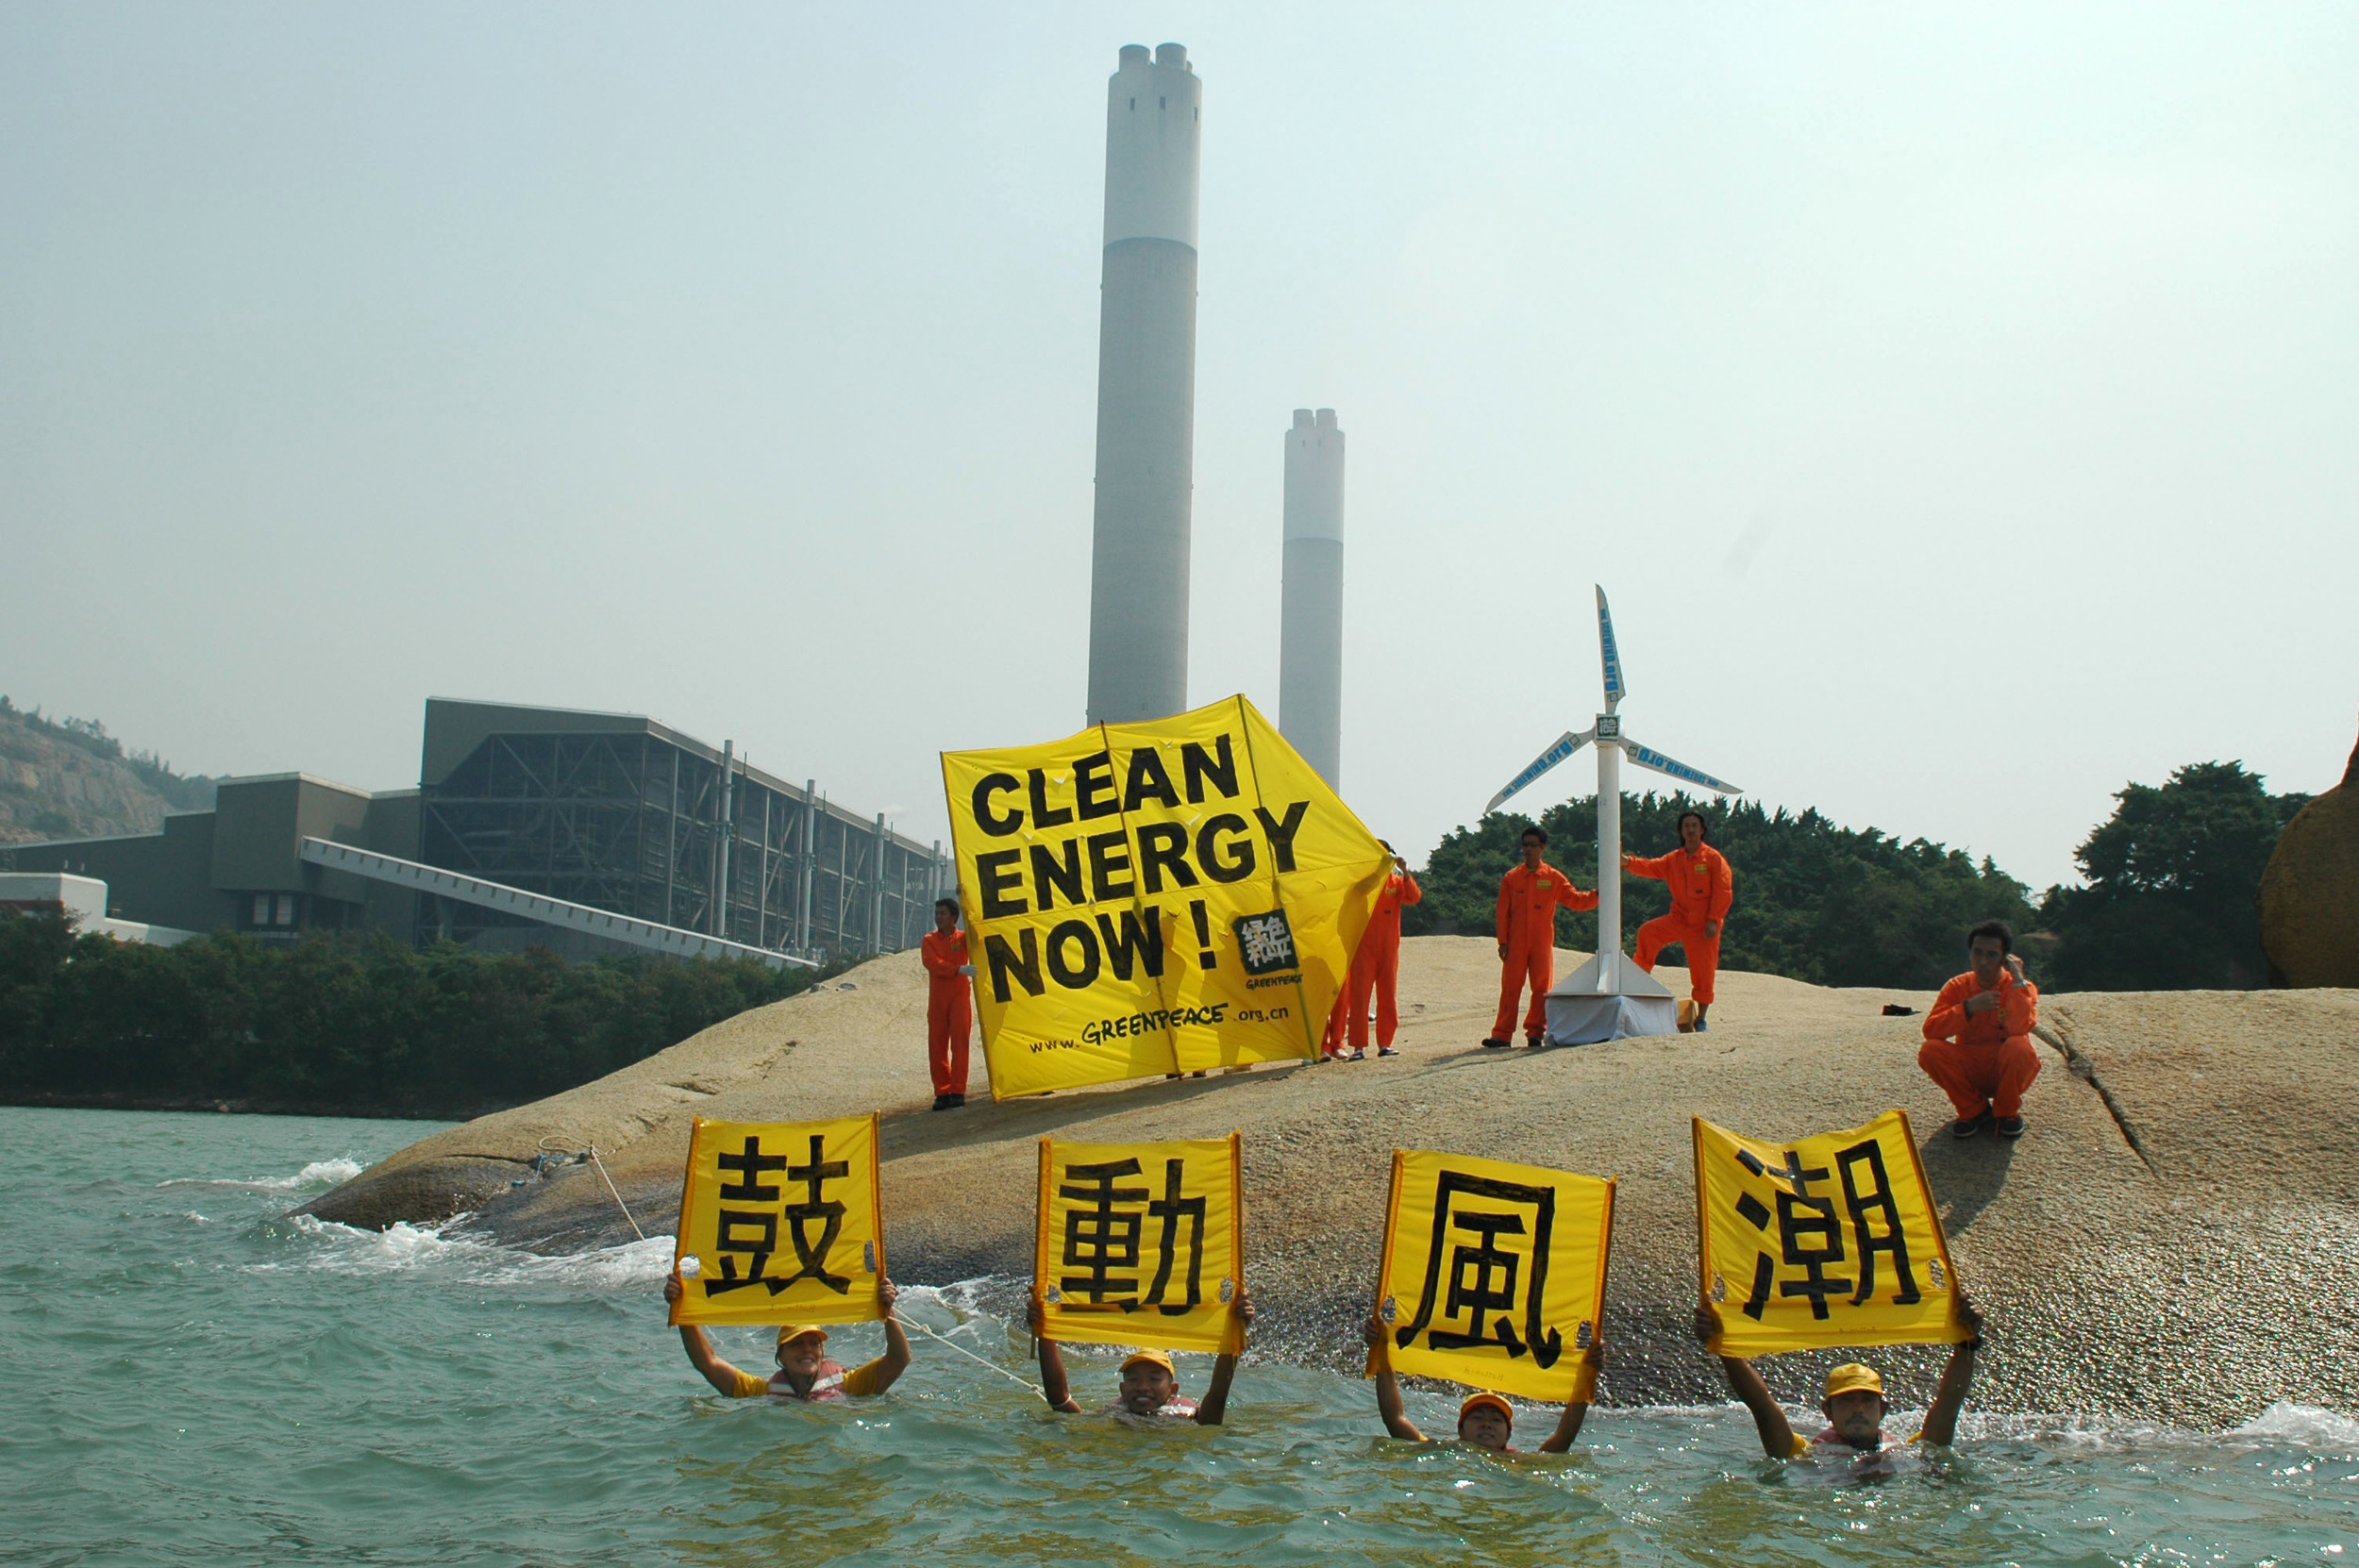 5 activists stand in front of a power station with banner reading clean energy now and a small wind turbine, there are also four activists who are in water in the foreground up to their necks with separate square Chinese character banners